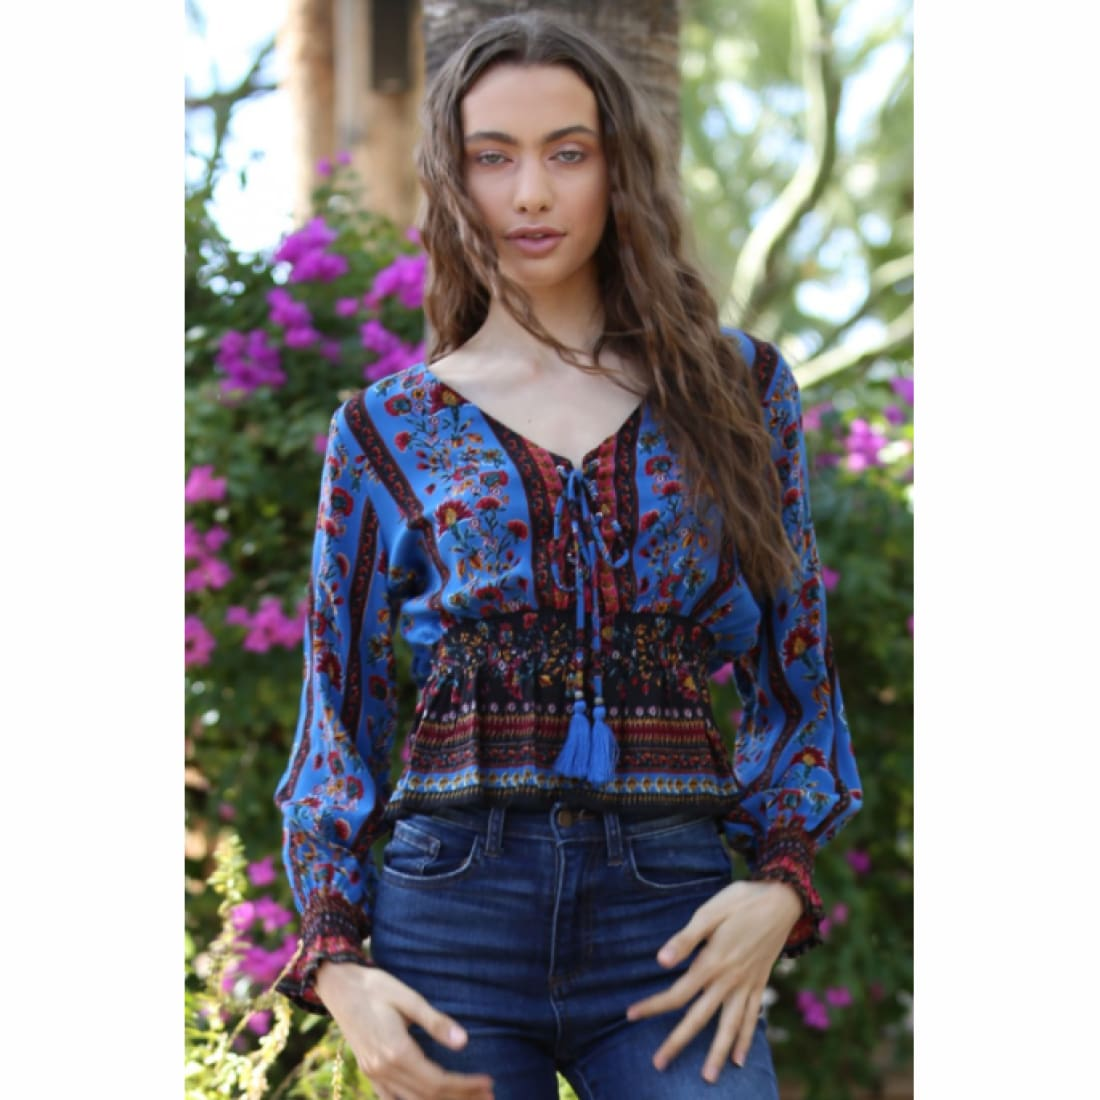 Angie Womens Lace Up Printed Long Sleeve Top Tops & Blouses